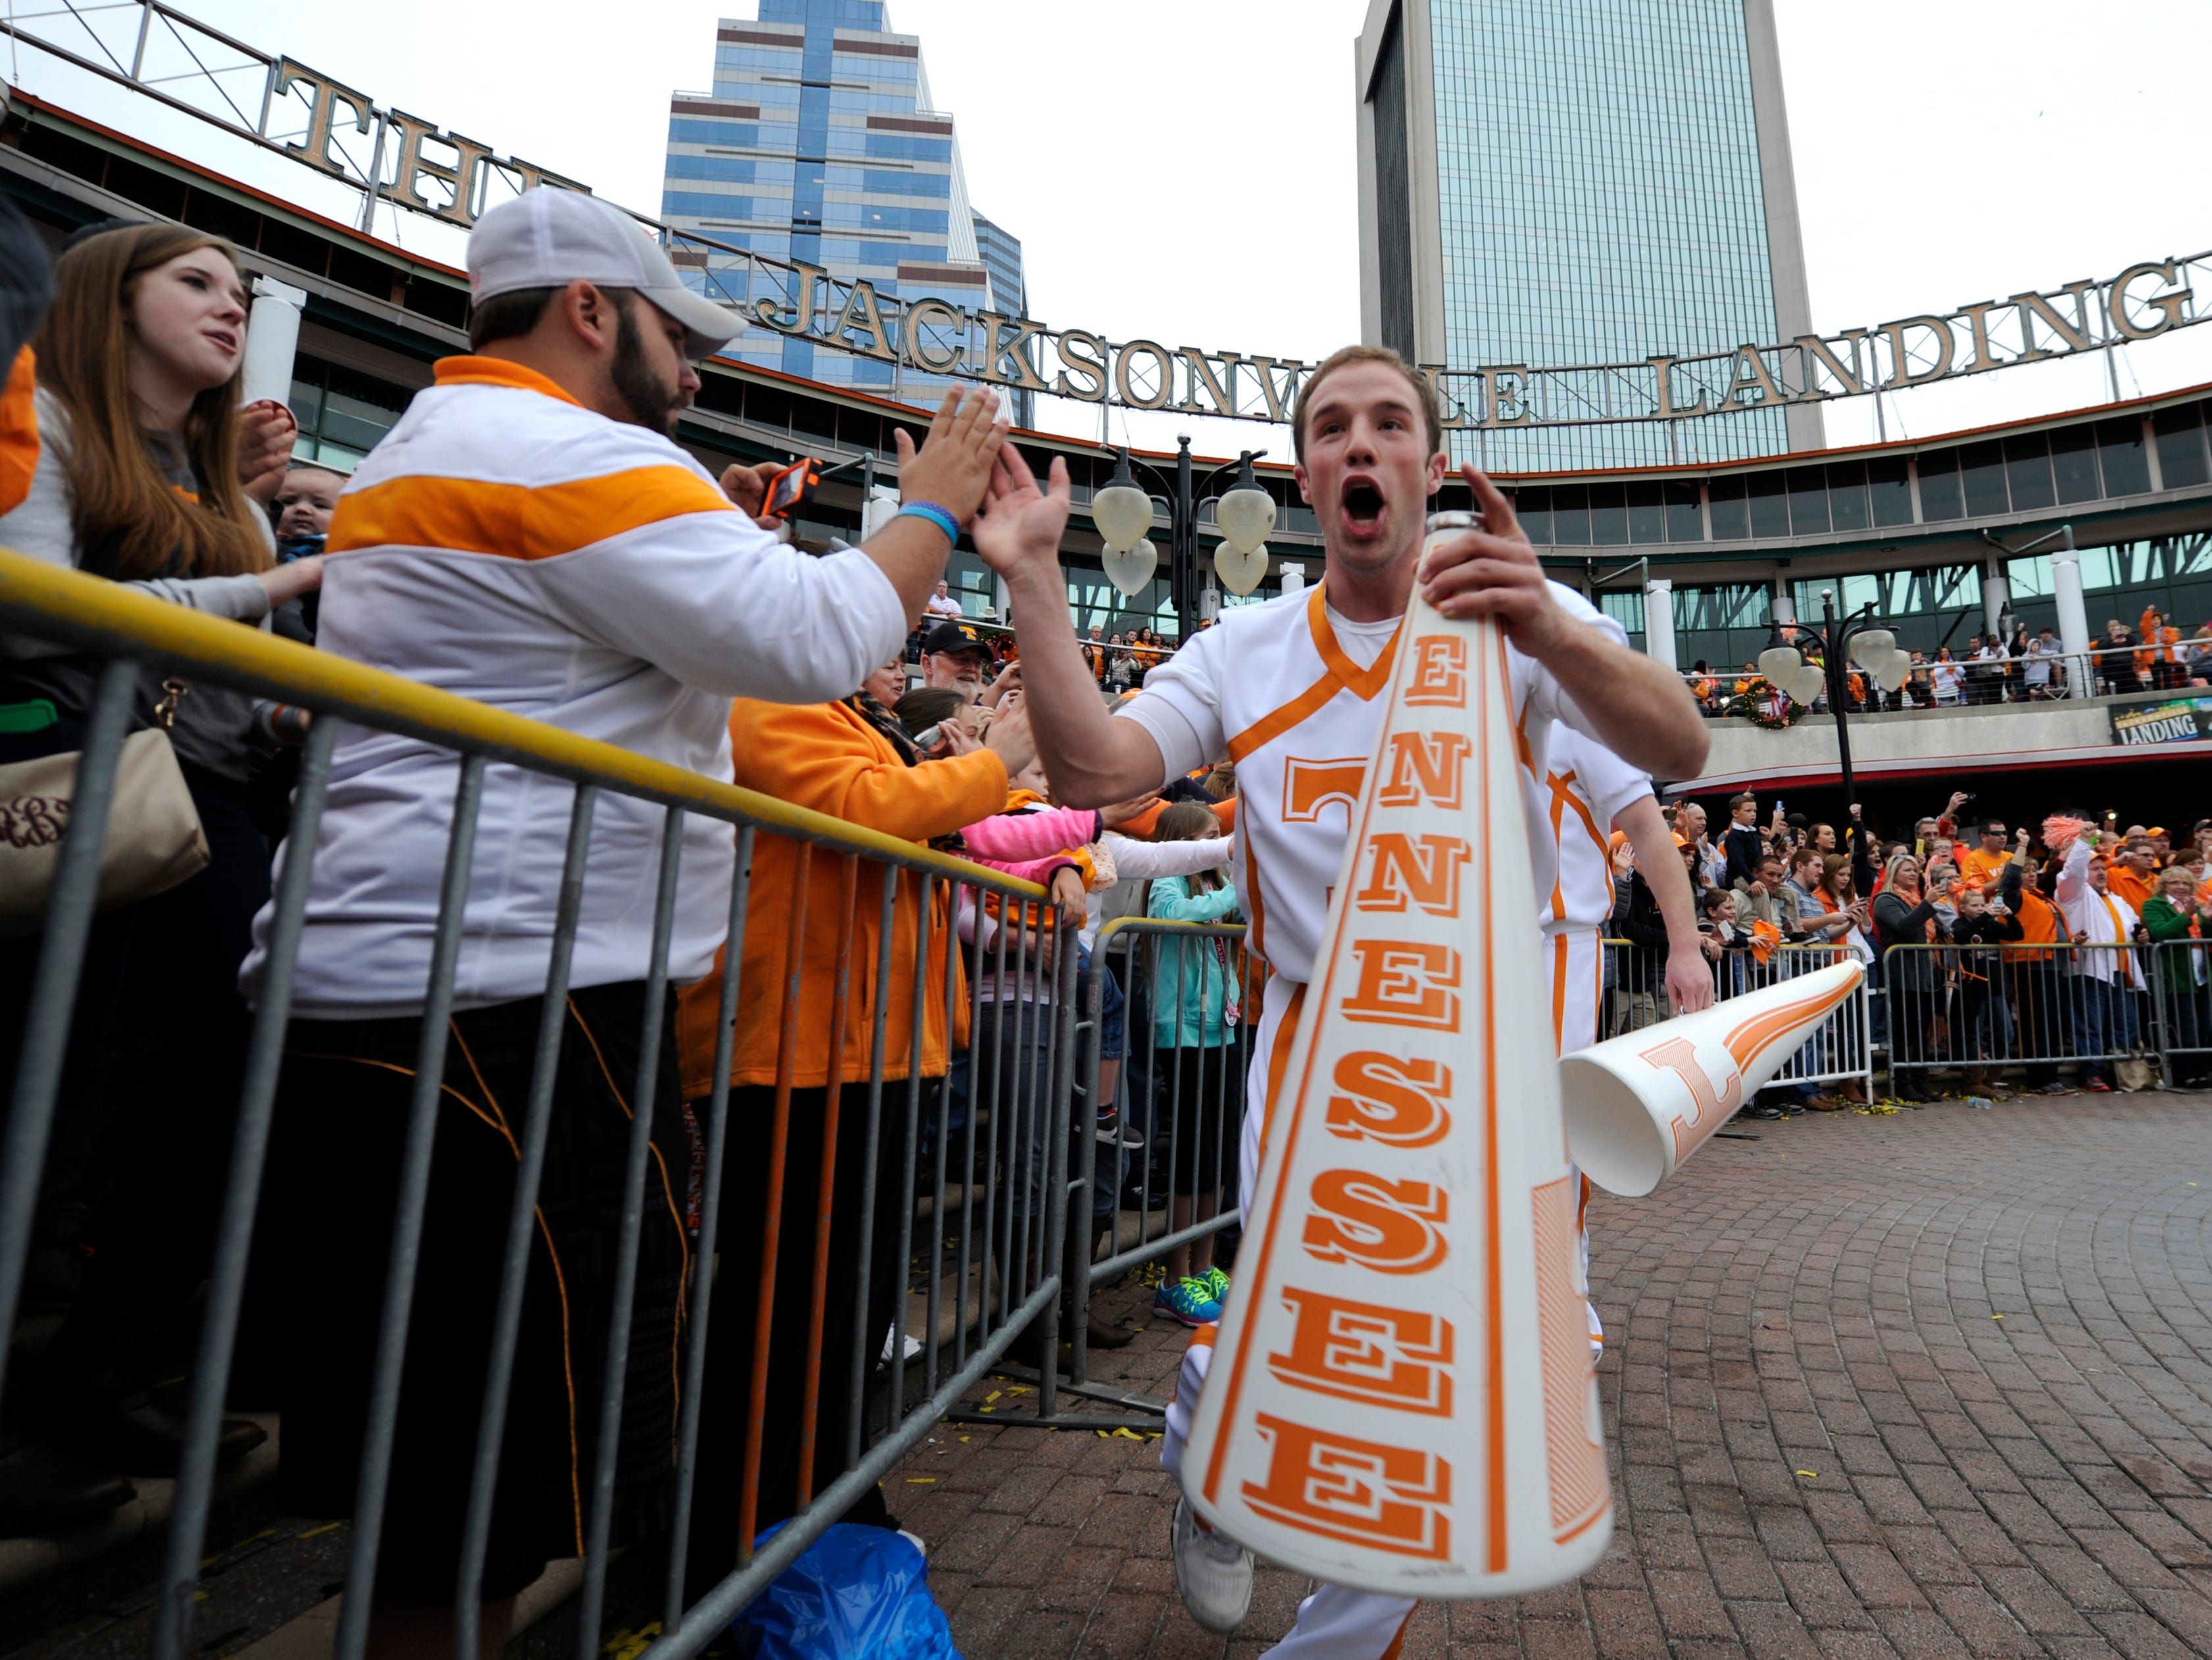 A Tennessee cheerleader high-fives fans during a pep rally at The Jacksonville Landing in Jacksonville, Fla. on Thursday, Jan. 1, 2015, before the next day's Taxslayer Bowl against Iowa.